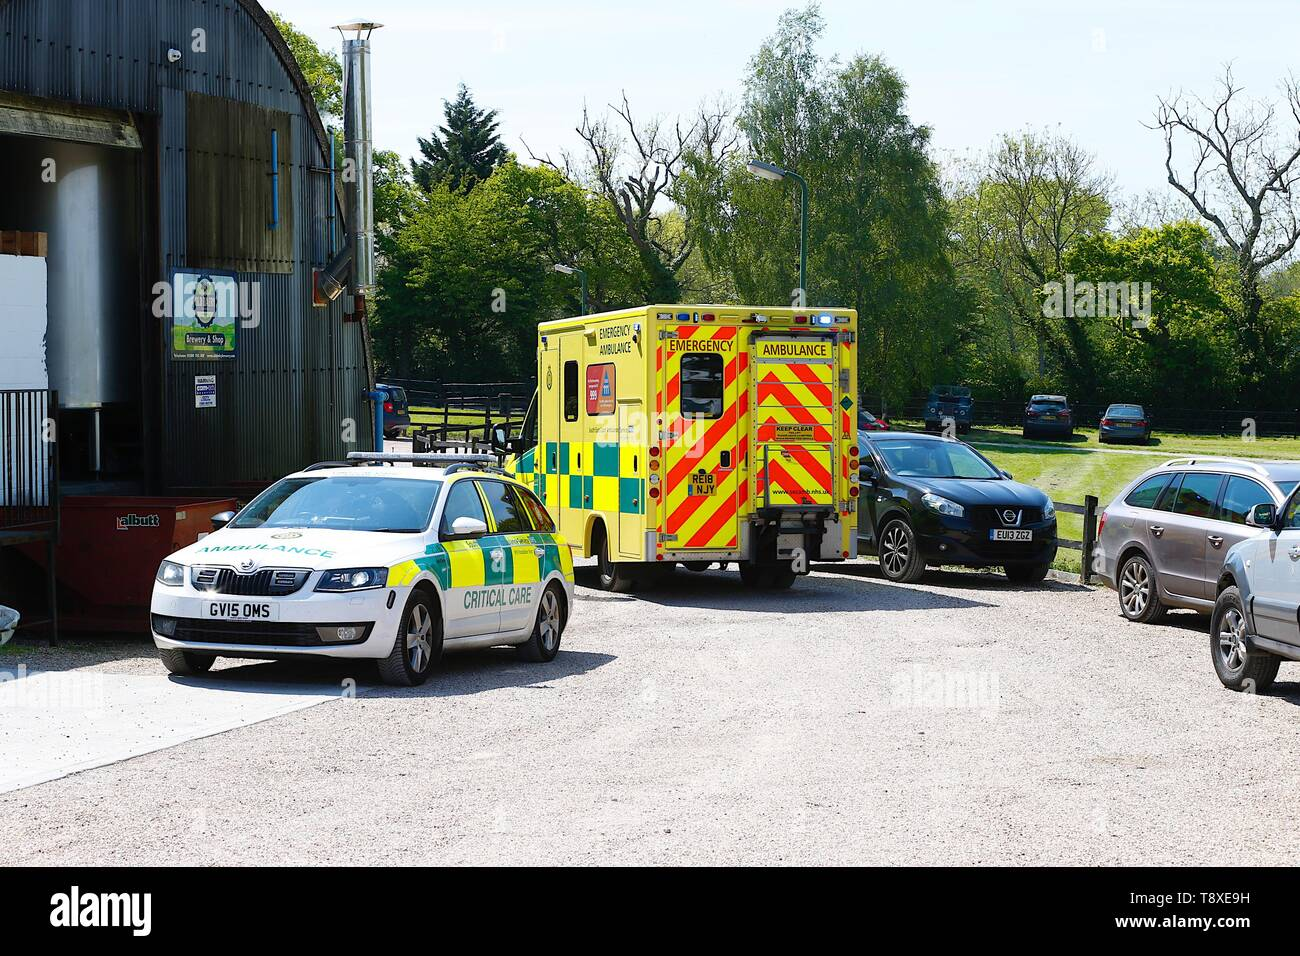 Tenterden, Kent, UK. 15th May, 2019. A Kent Surrey Sussex air ambulance has been dispatched to an incident in the town centre. Medical staff are at scene. The emergency has taken place at the Old Dairy Brewery just off the high street in the town centre. At the scene is a South East Coast ambulance and critical care car. Credit: Paul Lawrenson 2019, Photo Credit: Paul Lawrenson/Alamy Live News Stock Photo